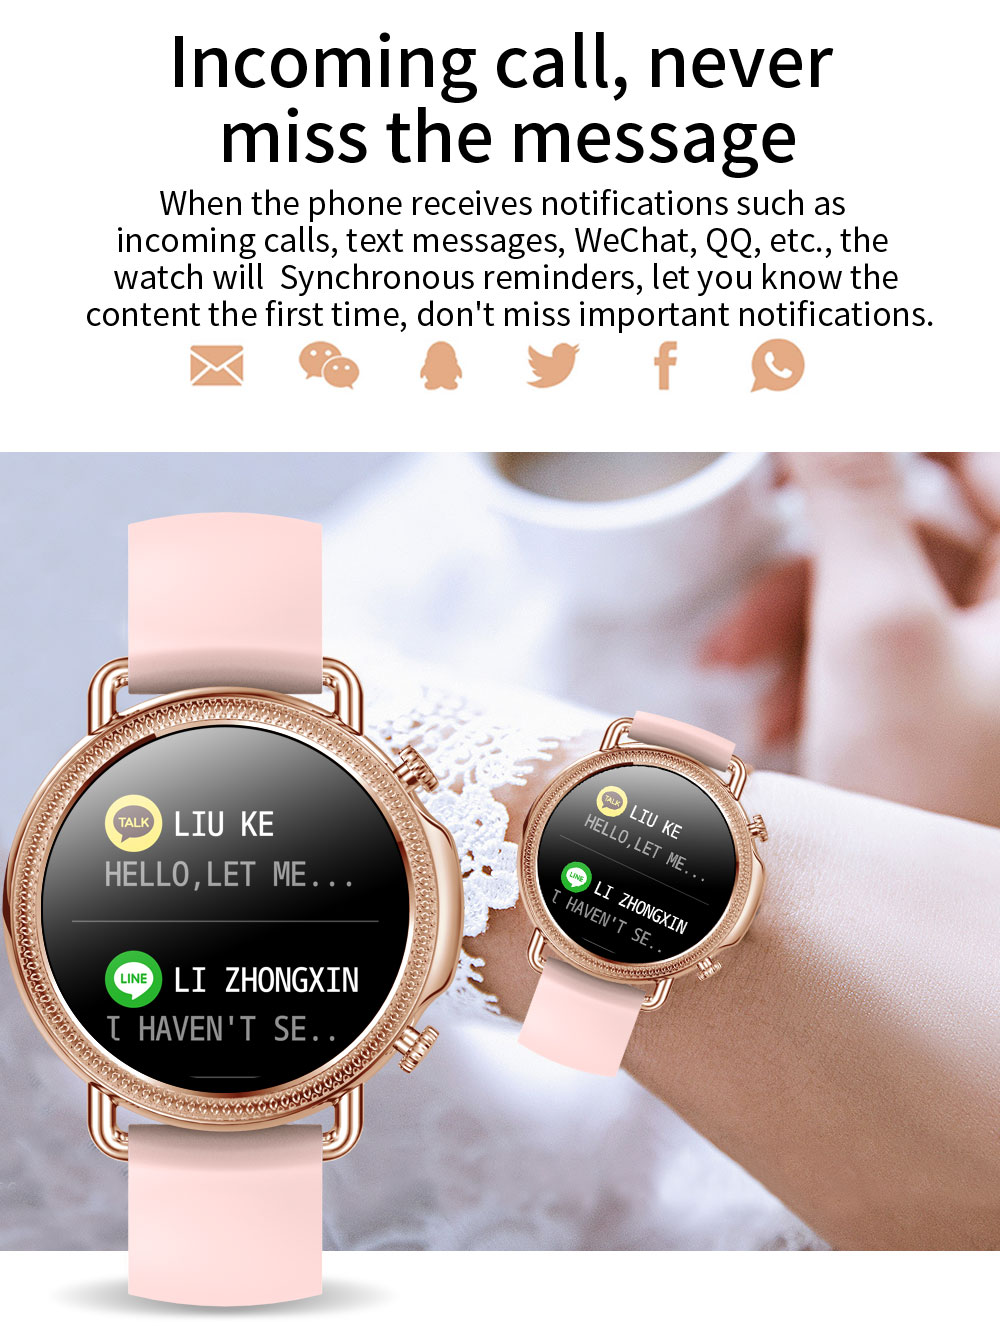 He4c96cf69668401393bc4340a6310190J 2021 Women Smart Watch 1.28 inch HD Screen IP67 Waterproof Lady's Watches Body Temperature Heart Rate Monitor PK V23